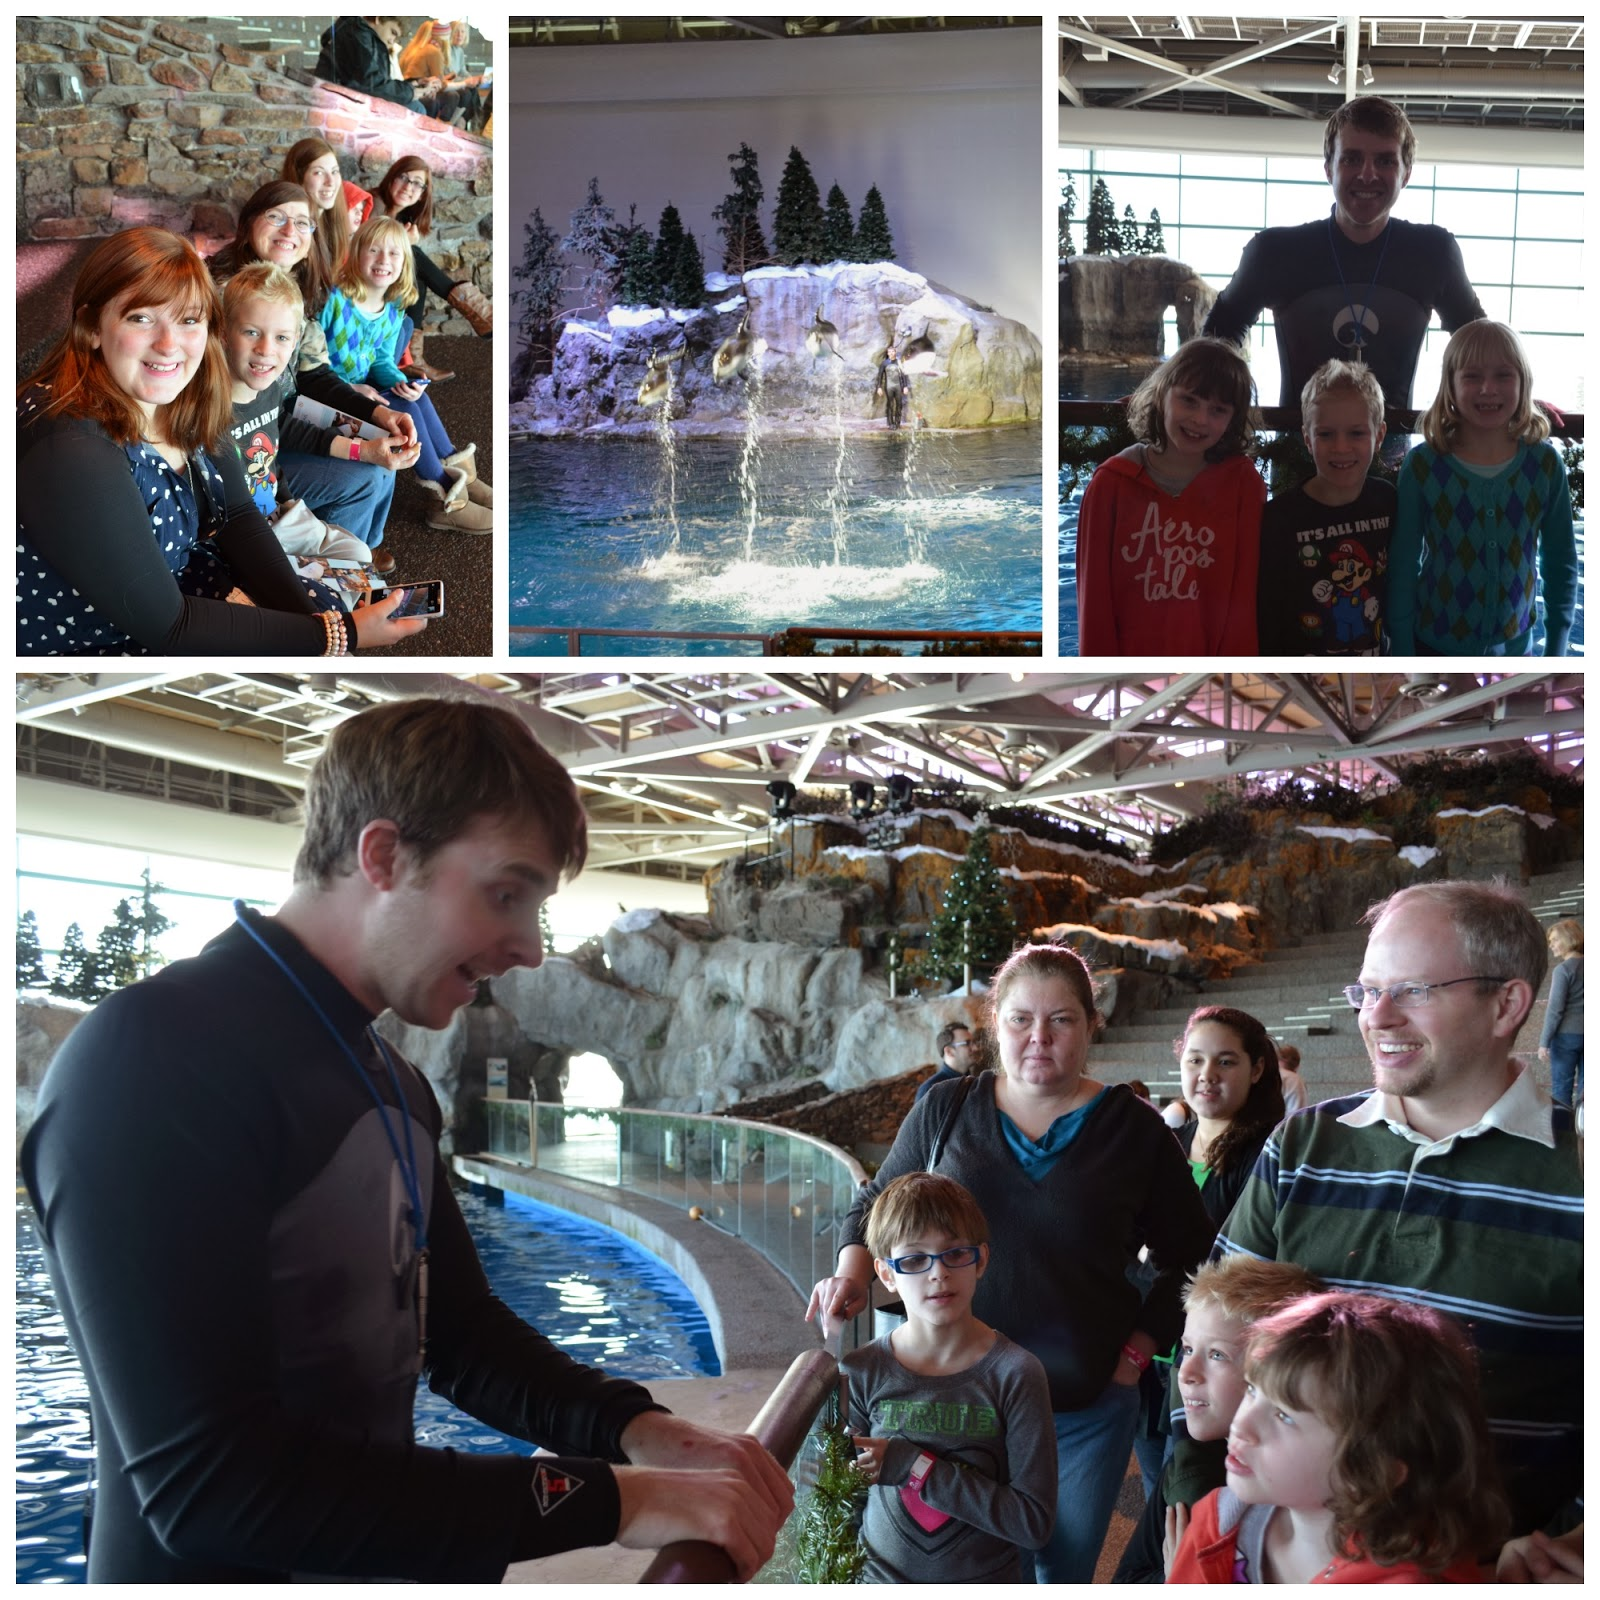 Visiting the Shedd Aquarium in Chicago